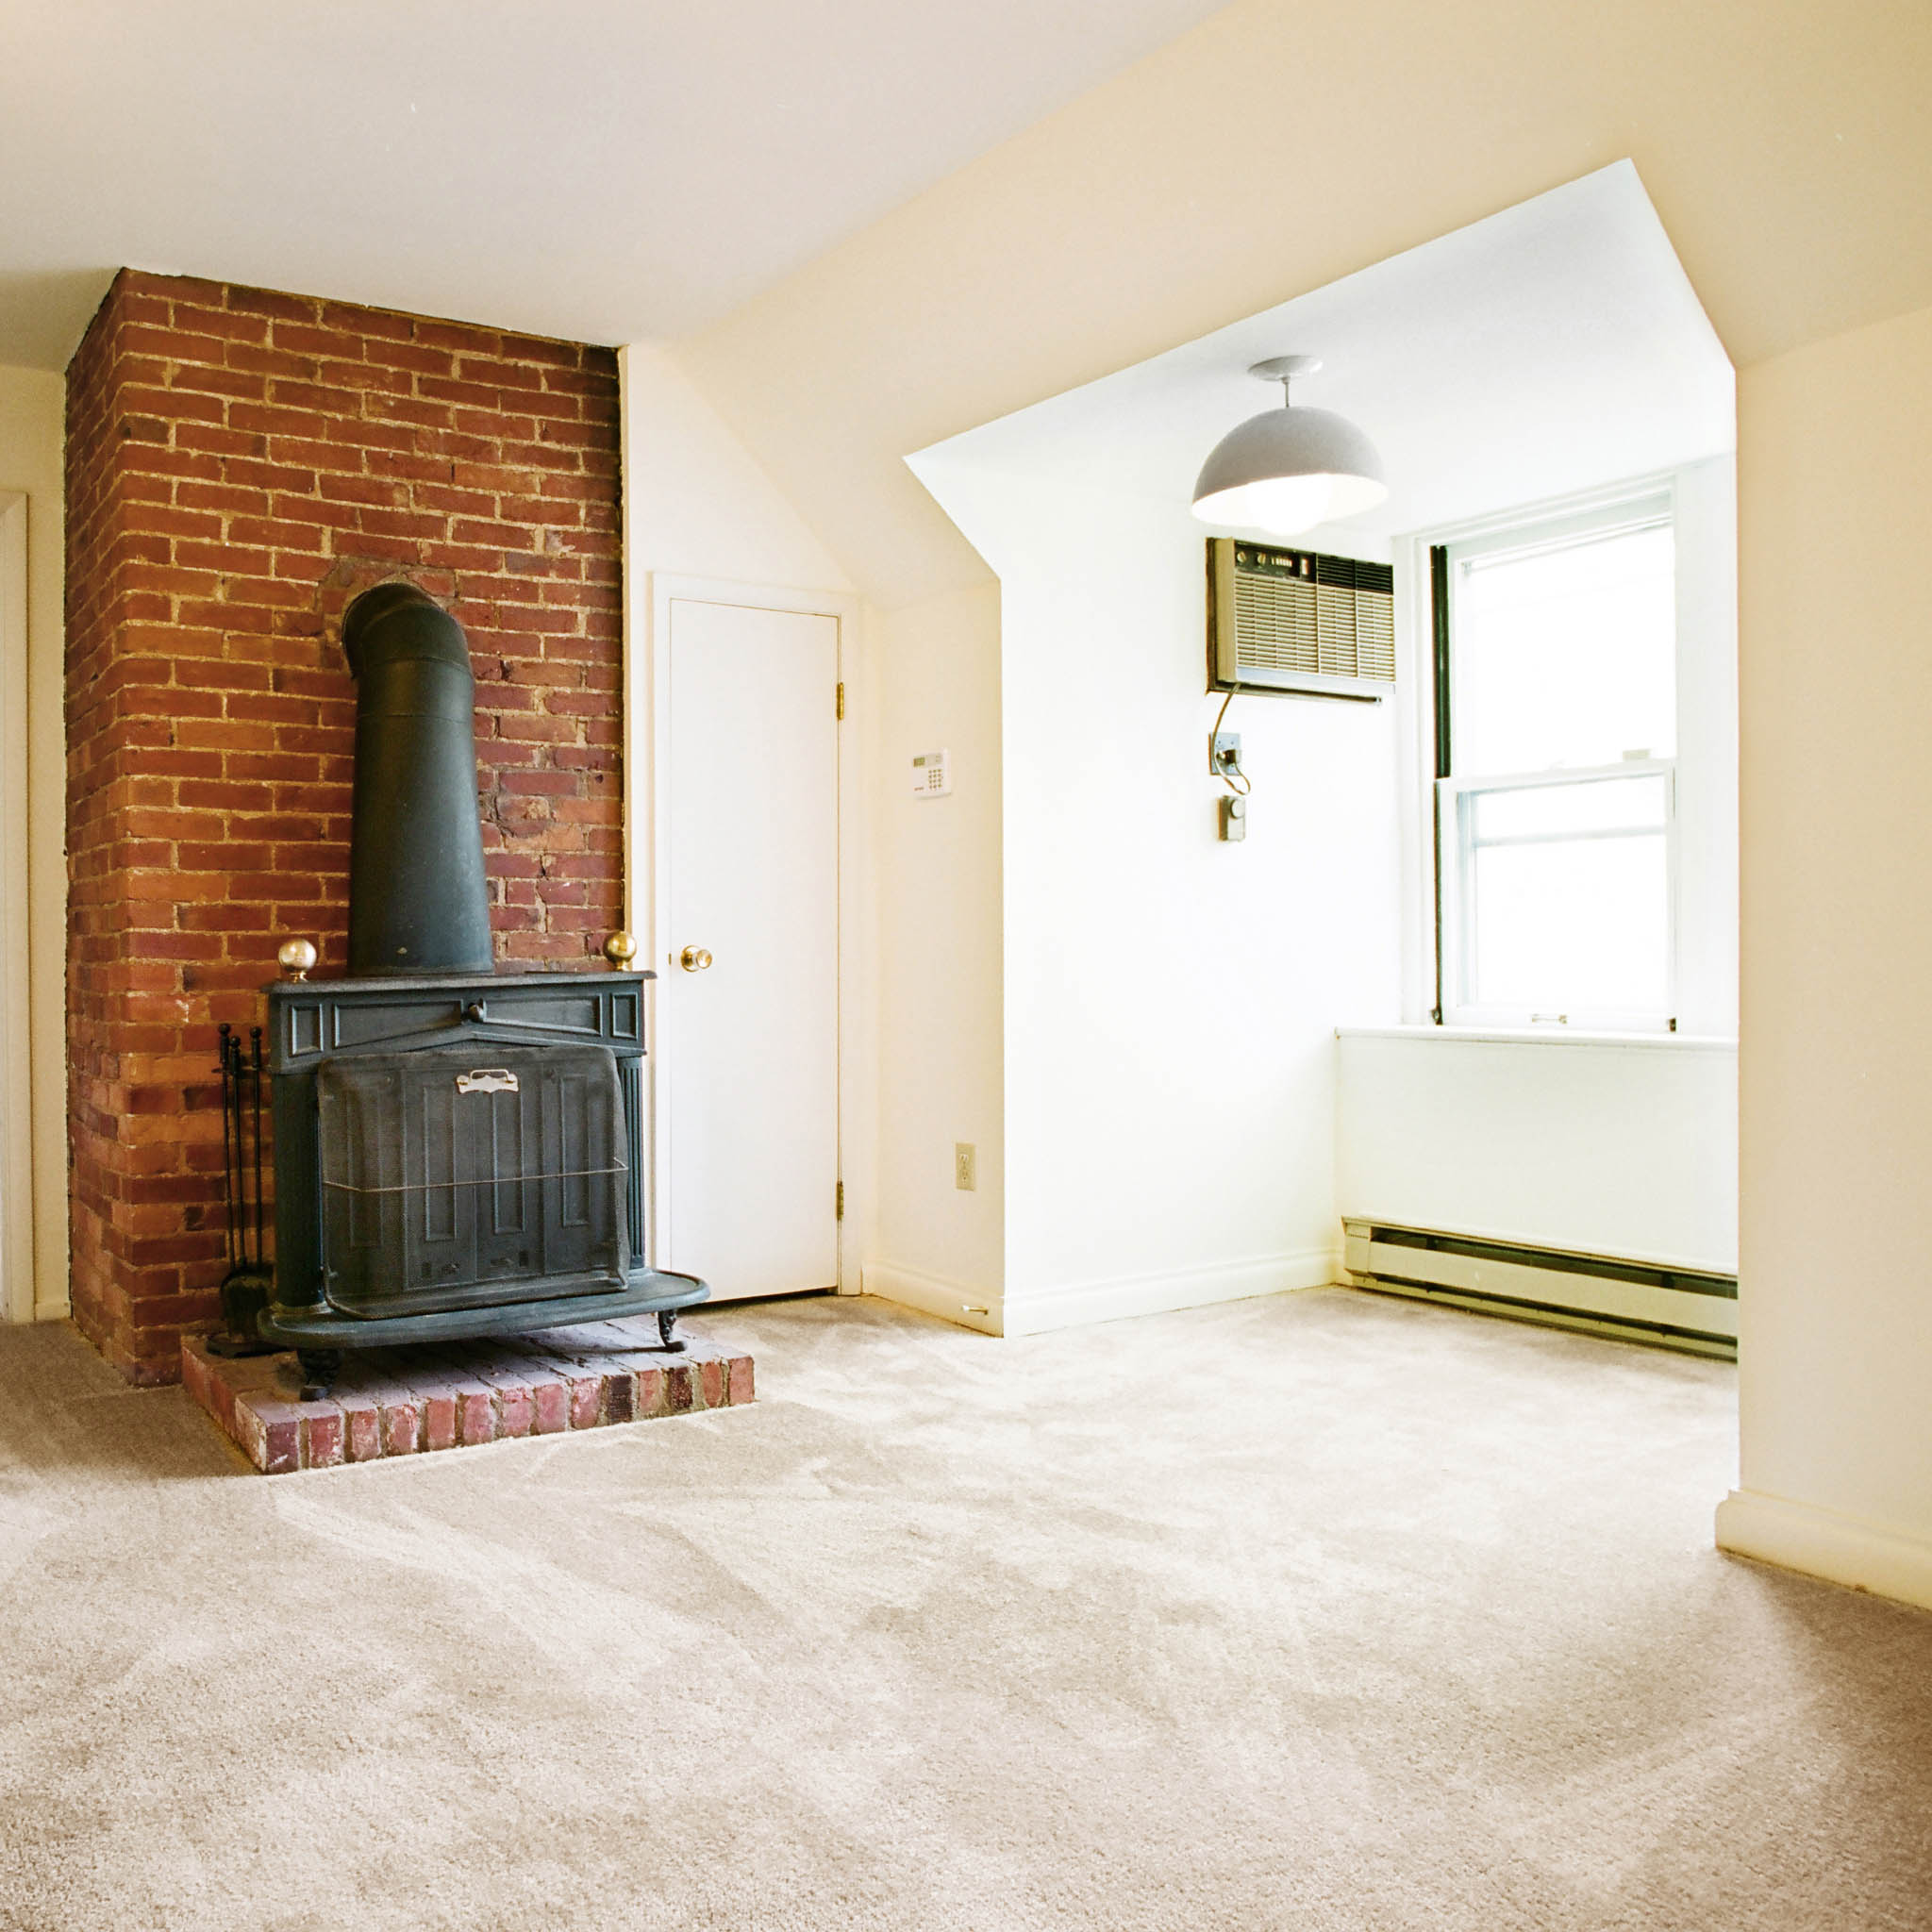 Distance From Fireplace To Rug: 6328 Howe Street, Apt. 32